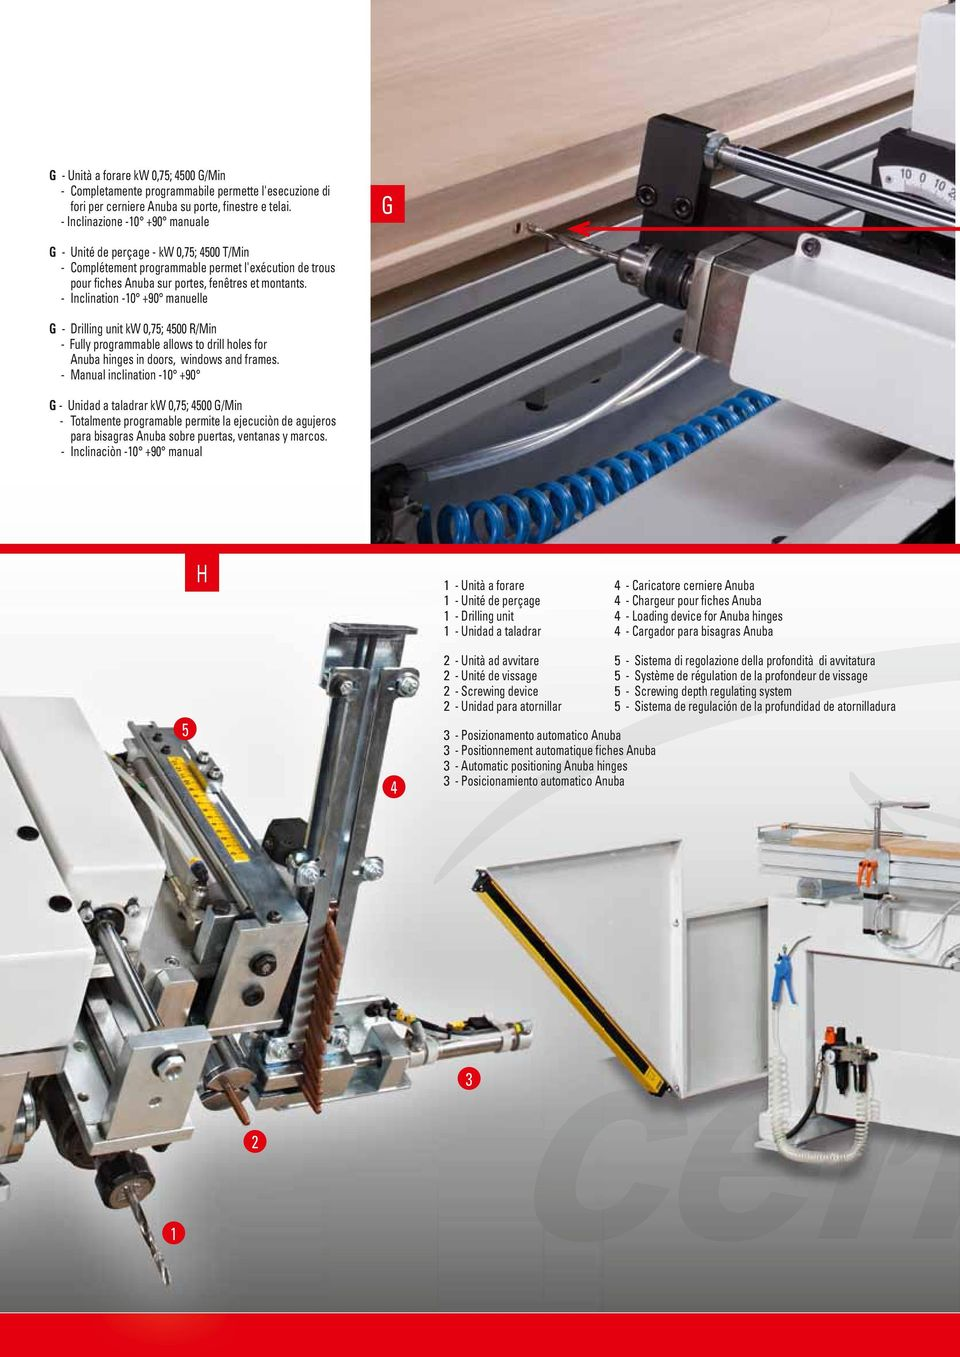 - Inclination -10 +90 manuelle G - Drilling unit kw 0,75; 4500 R/Min - Fully programmable allows to drill holes for Anuba hinges in doors, windows and frames.